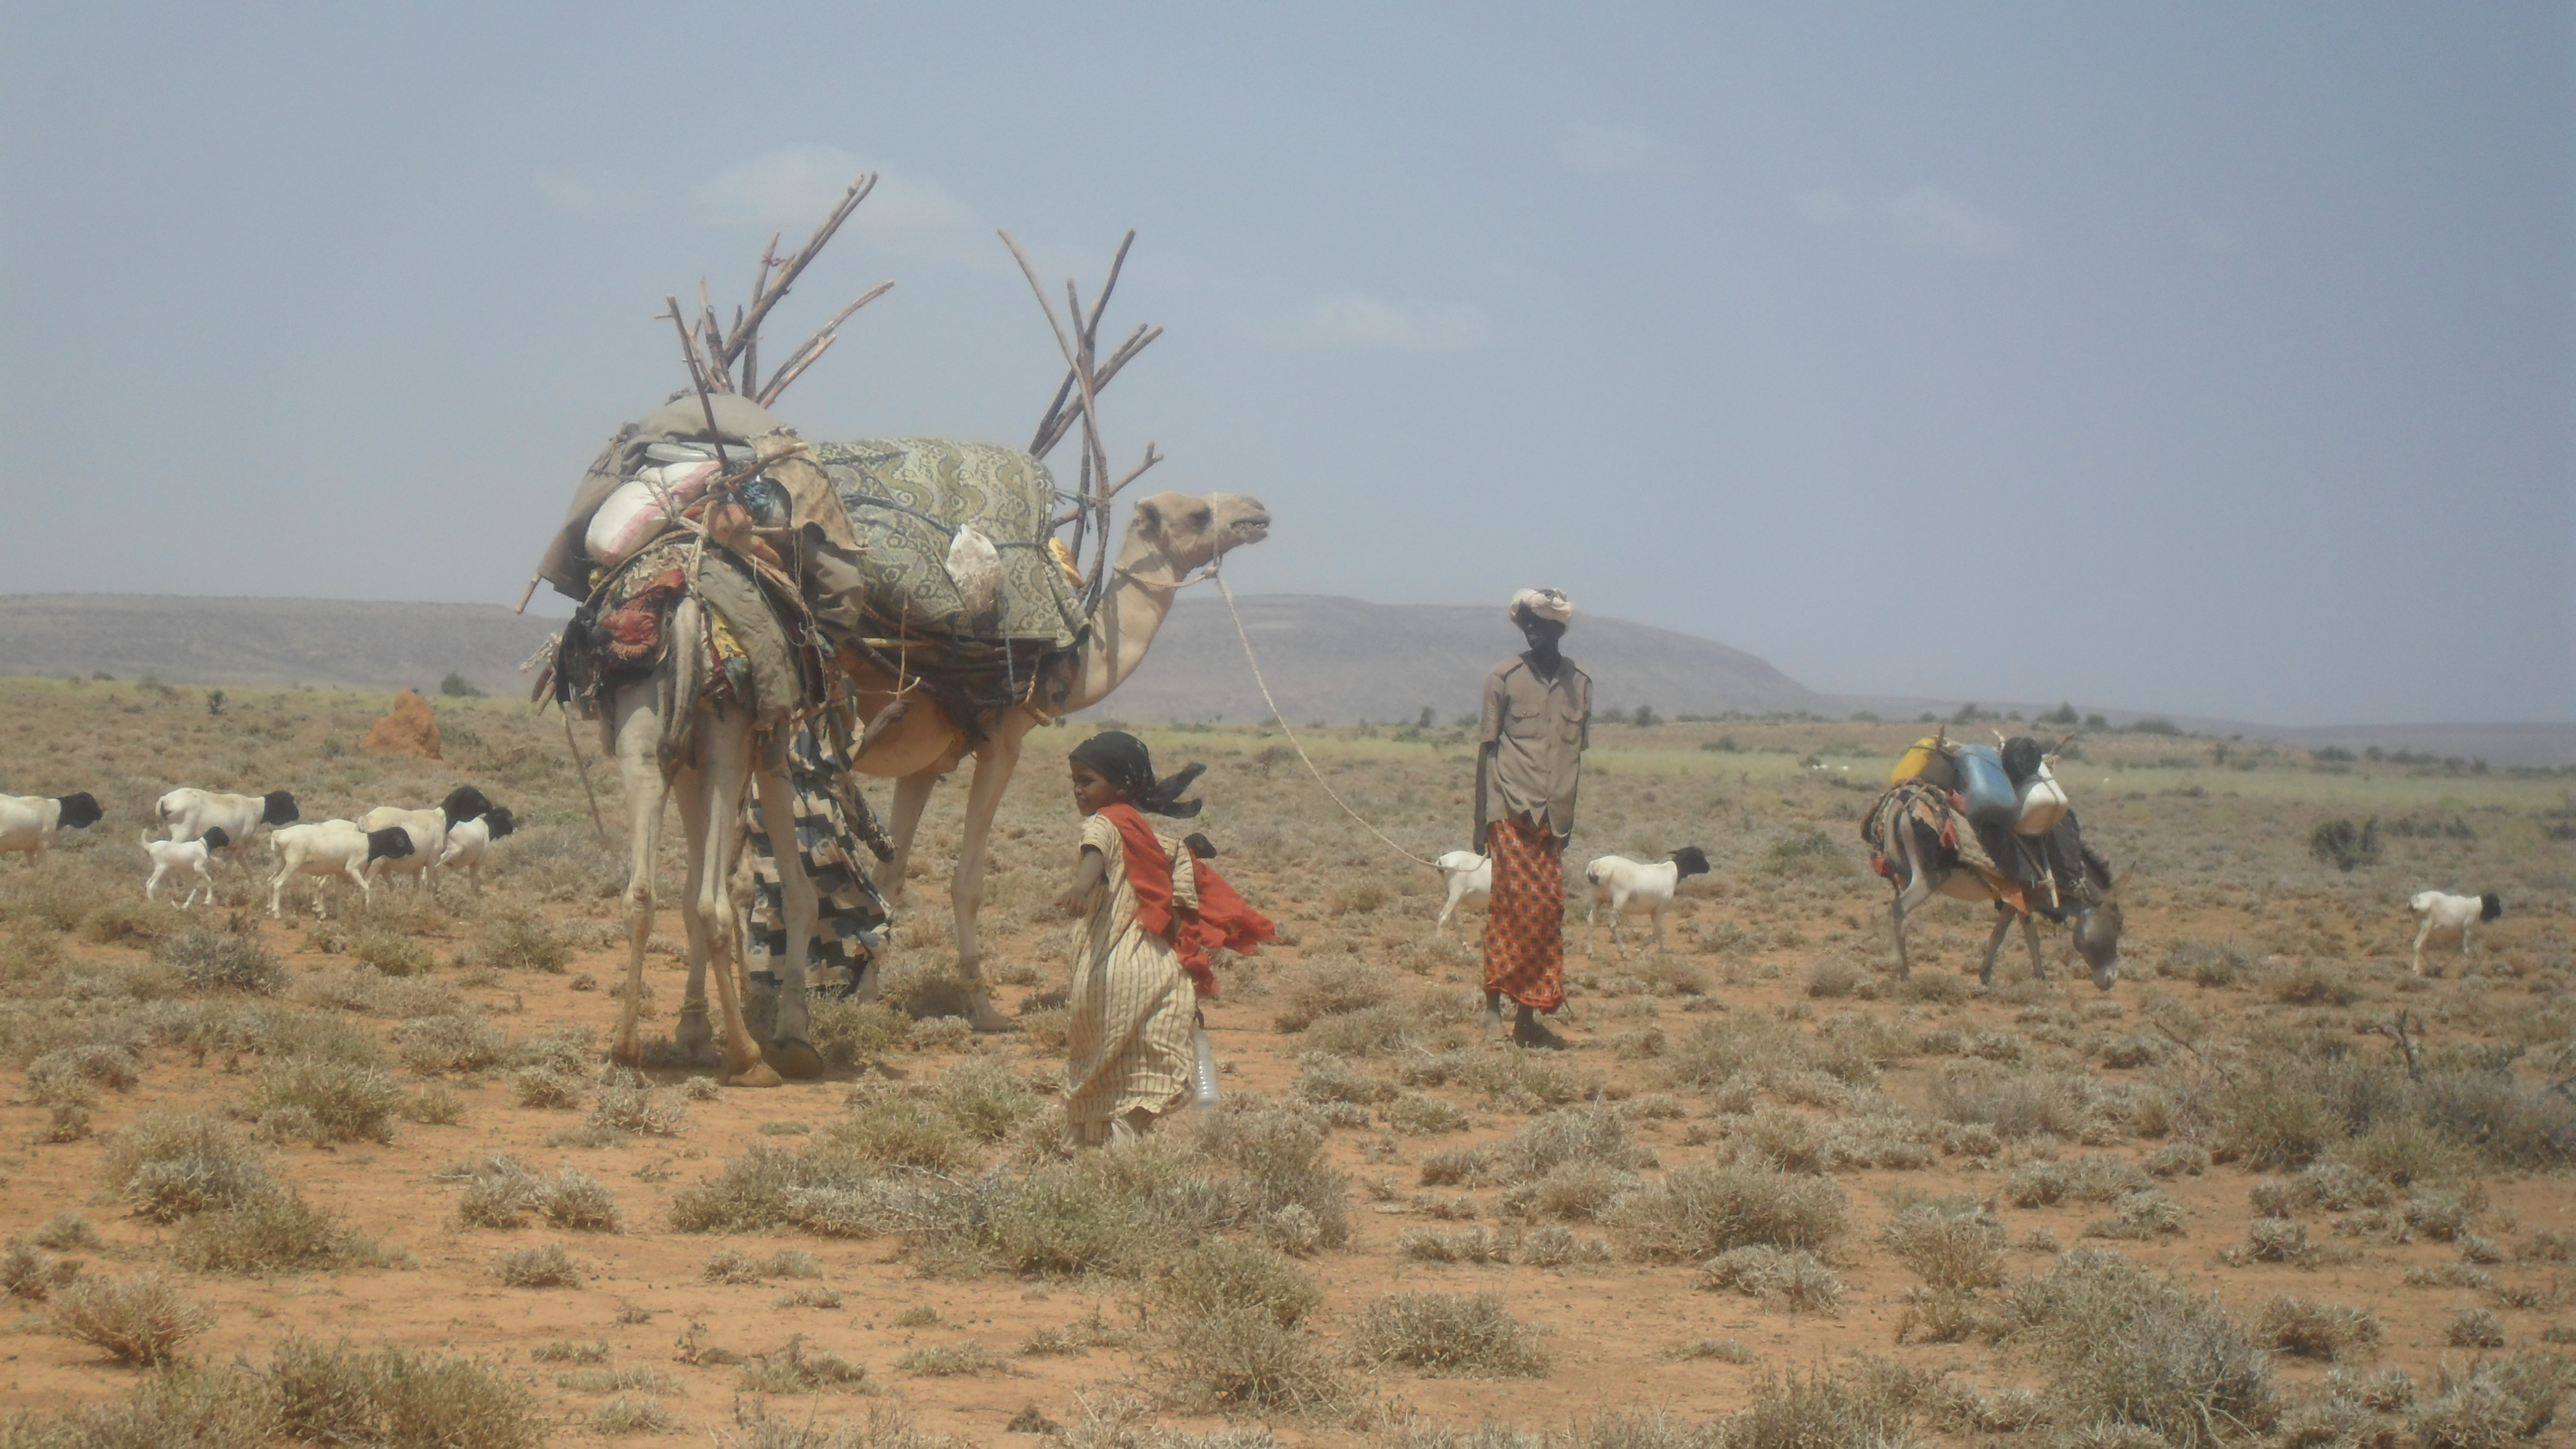 horn of africa and somalia Section 2 2011 drought in east africa, famine in somalia the summer of 2011 produced one of the worst droughts in 60 years in the horn of africa.